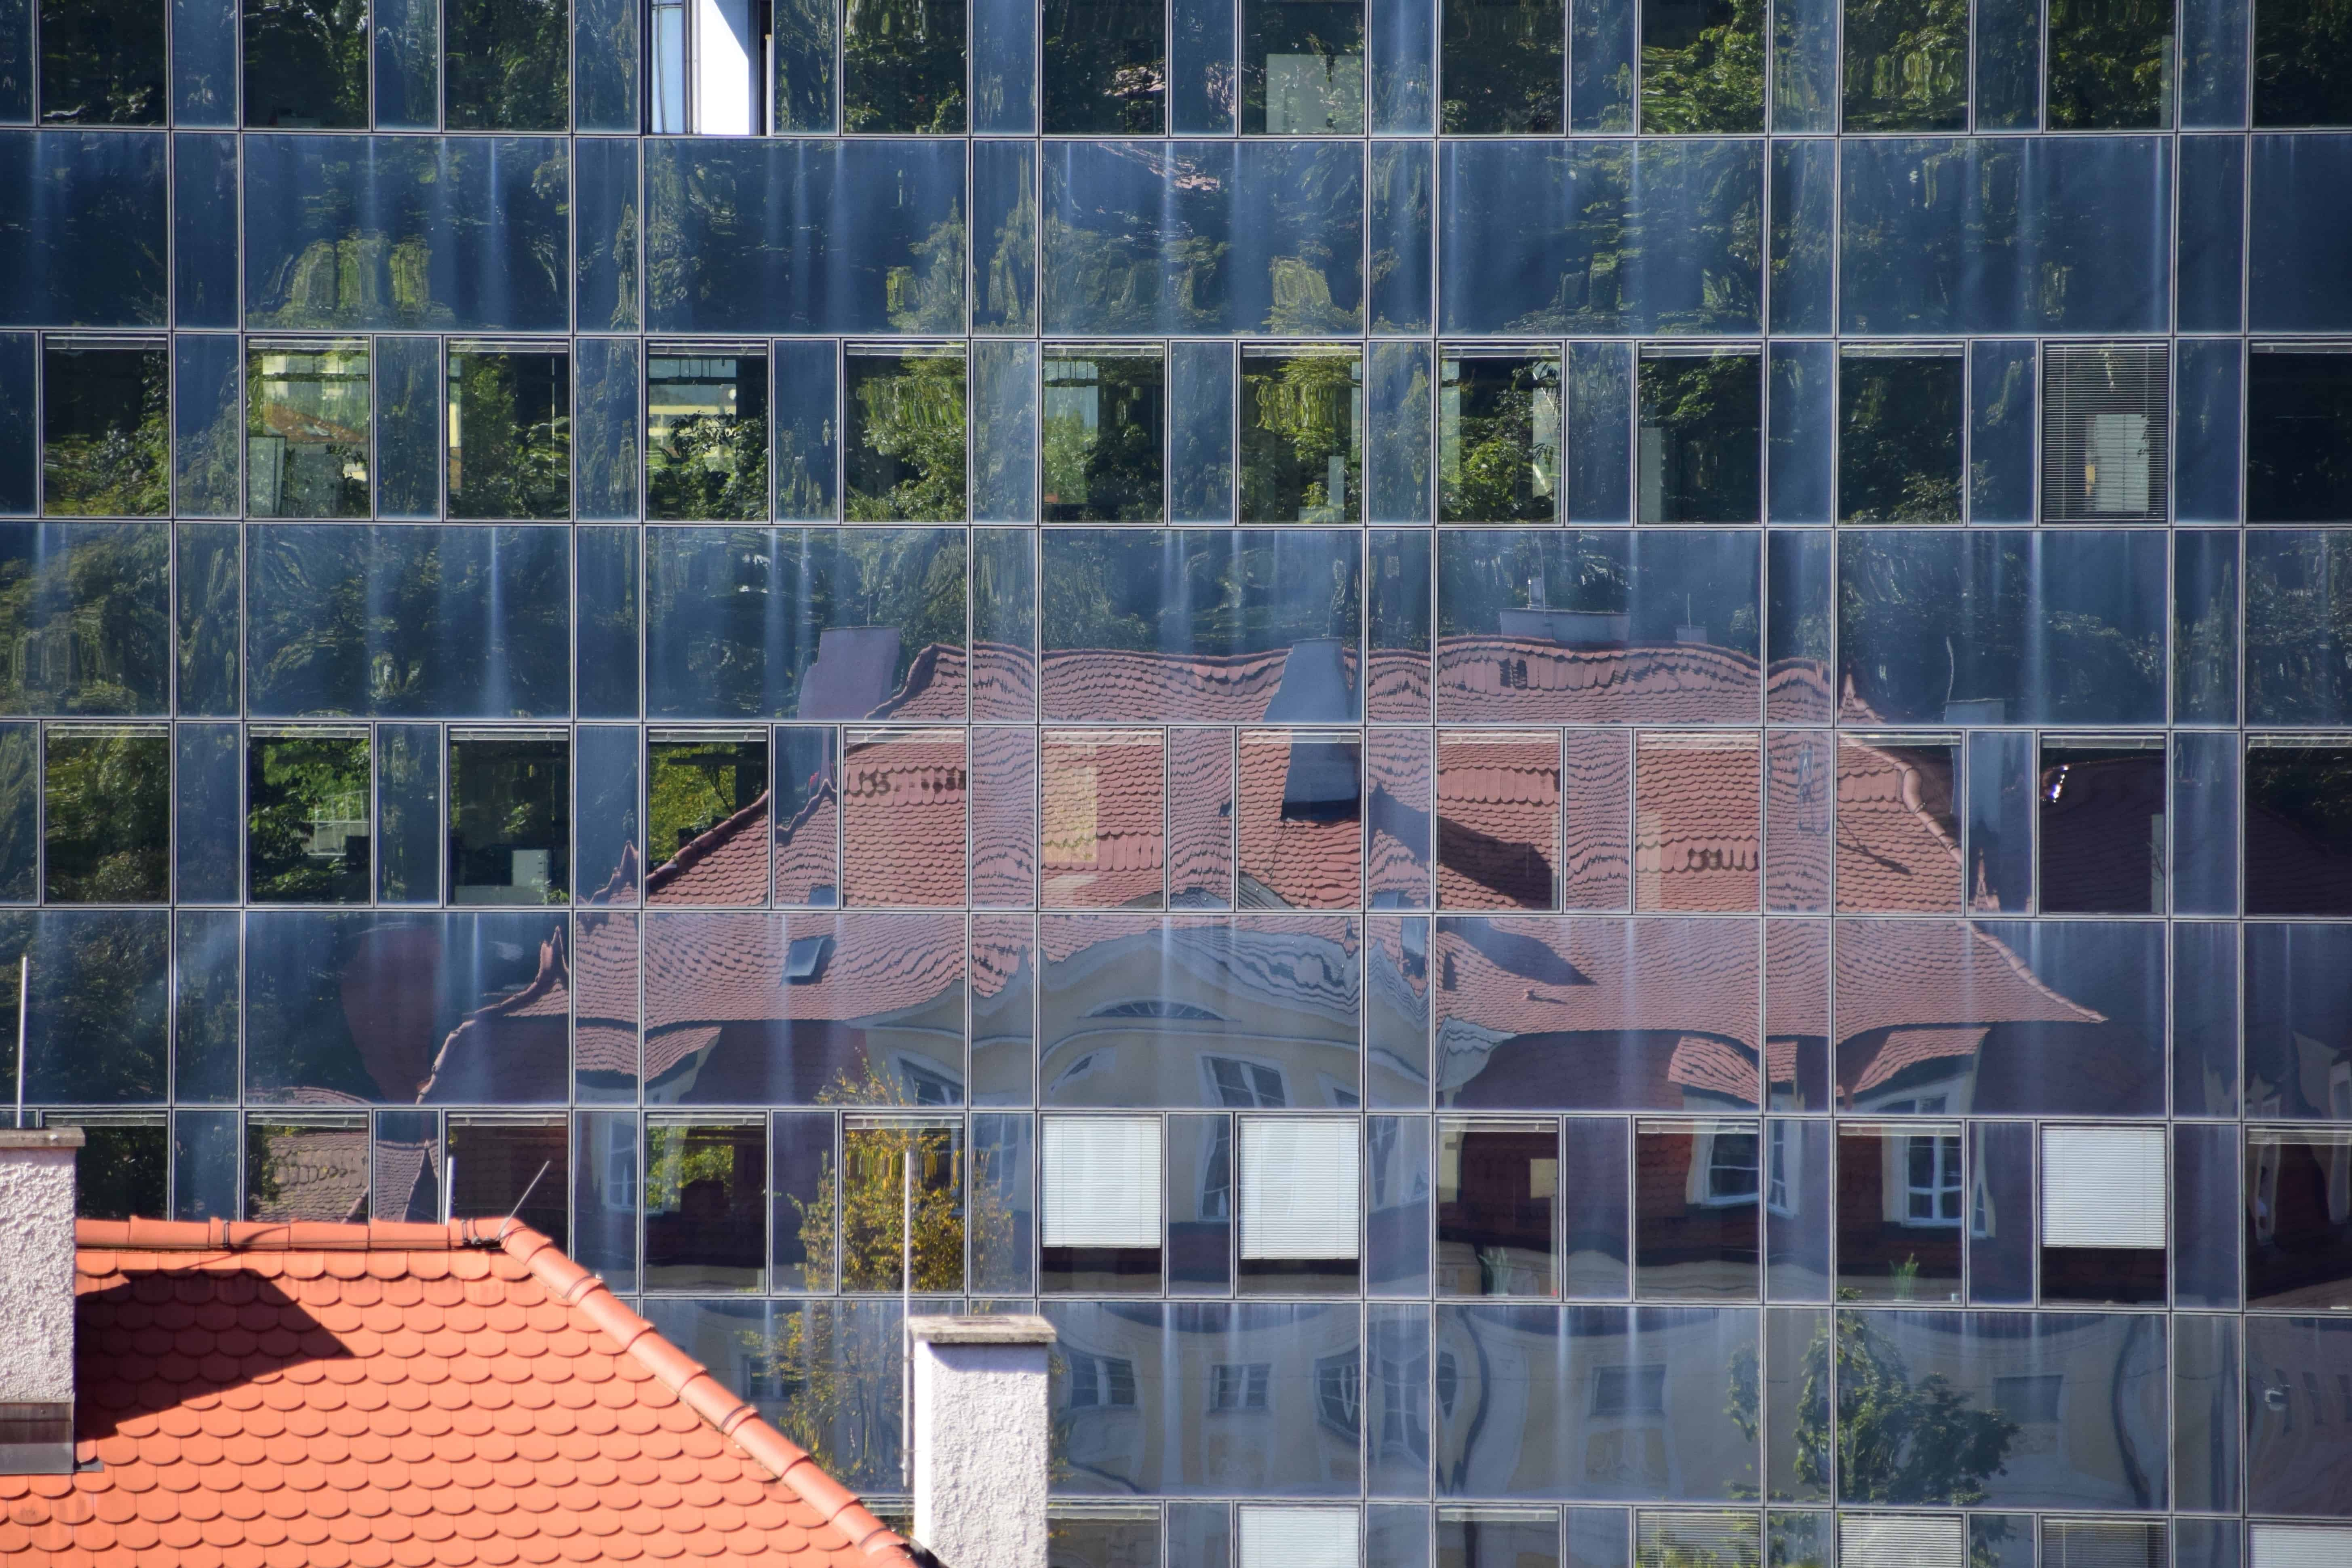 Free picture house window reflection architecture